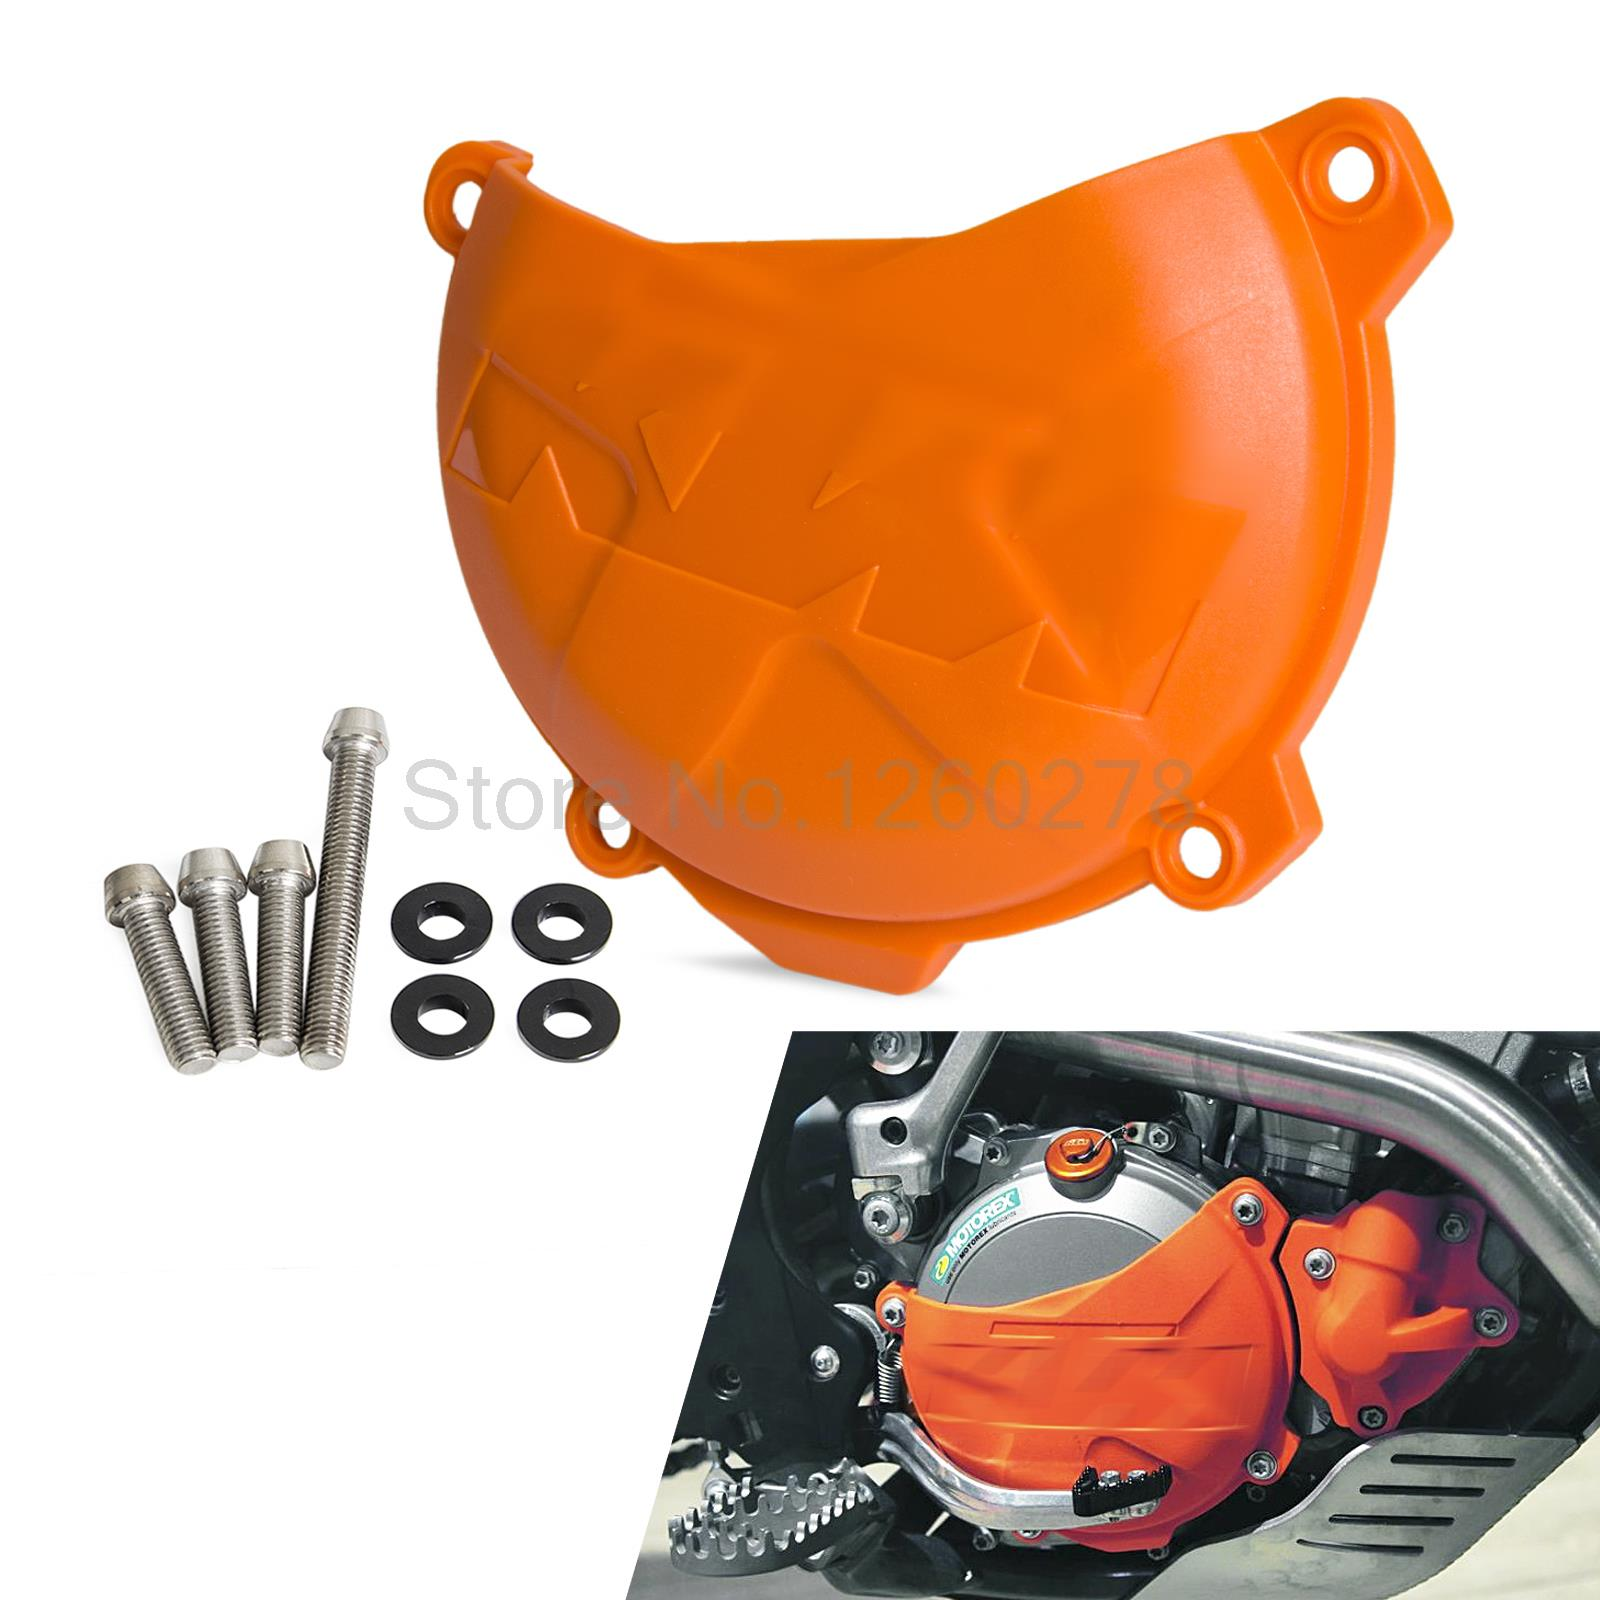 Clutch Cover Protection Cover For KTM 250 350 SX-F XC-F EXC-F XCF-W SIX DAYS  FREERIDE 350 2012-2016 Motocross Enduro Supermoto orange cnc billet factory oil filter cover for ktm sx exc xc f xcf w 250 400 450 520 525 540 950 990